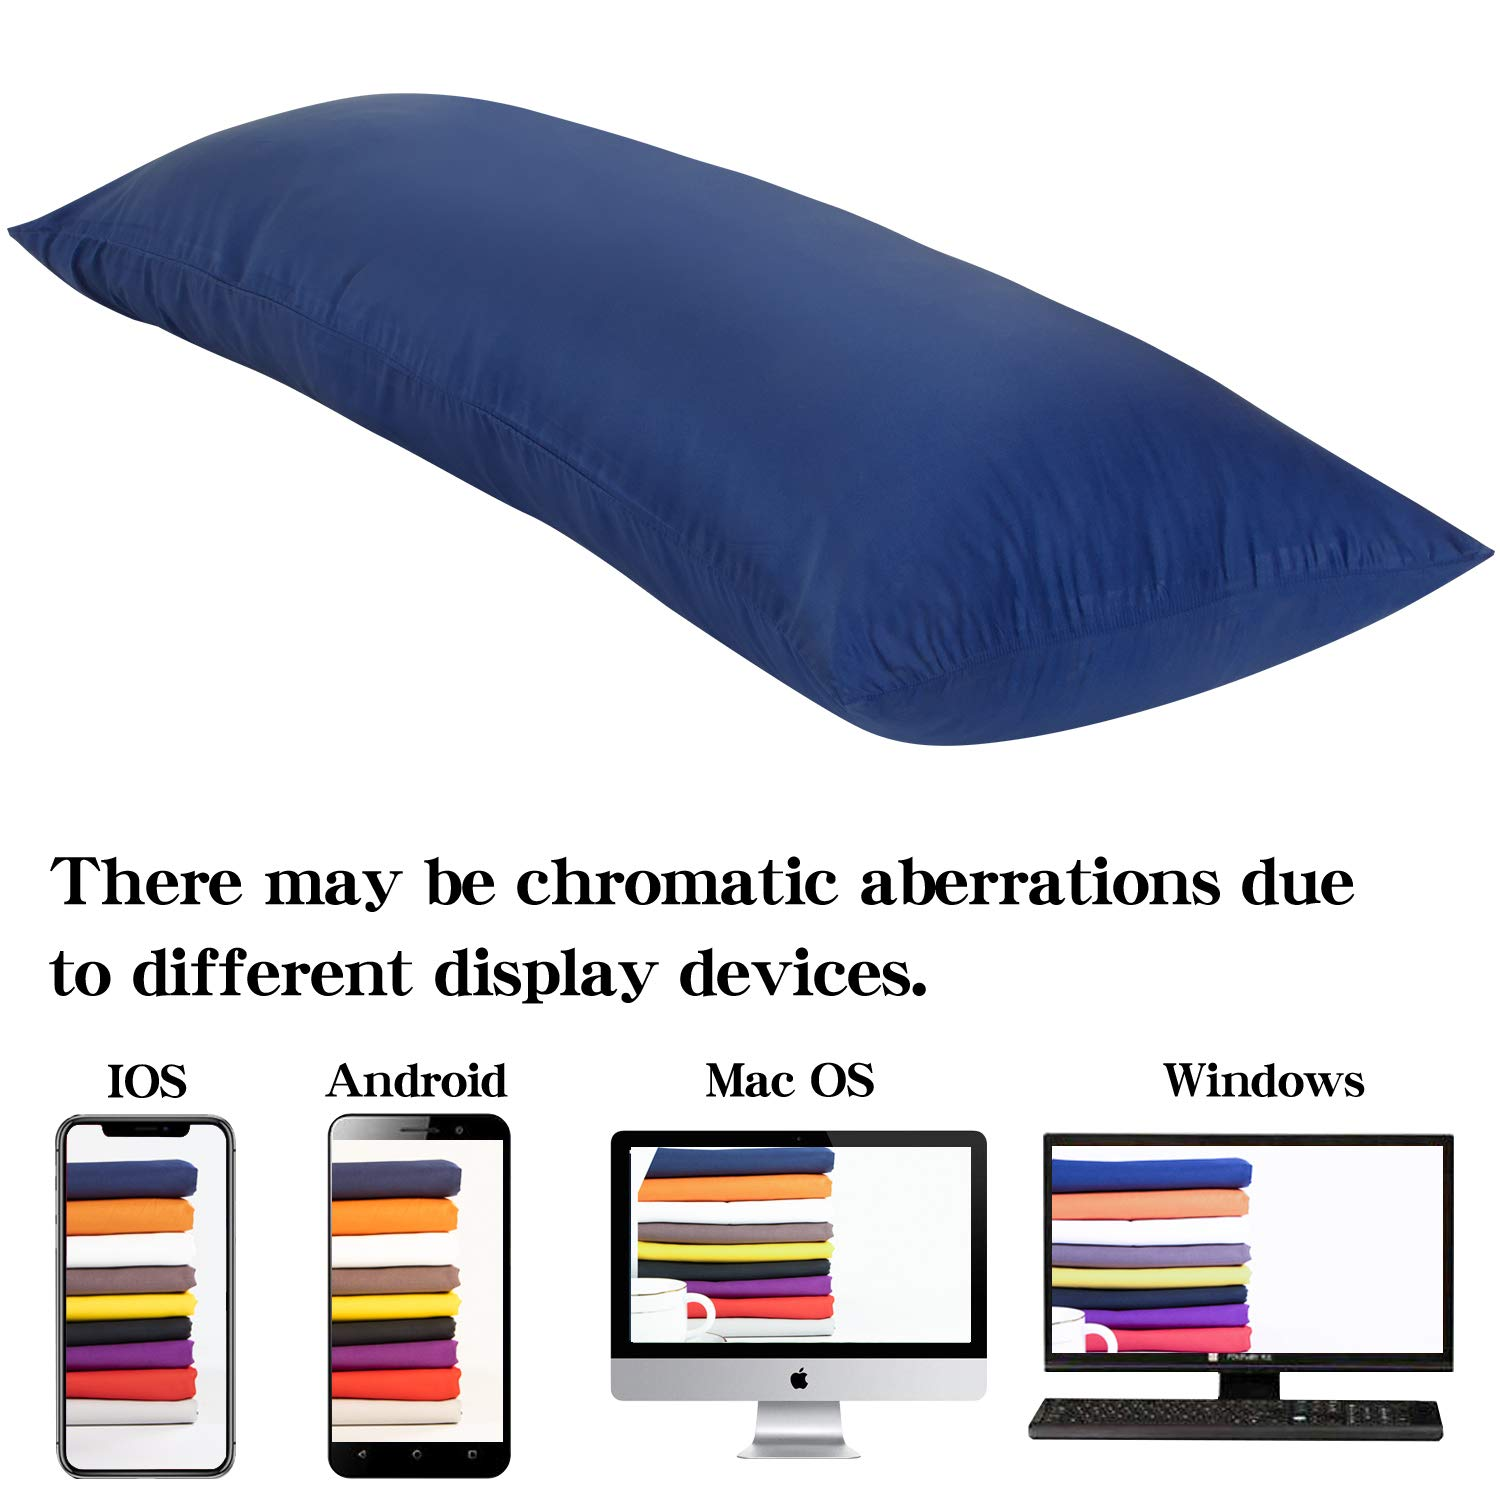 NTBAY Zippered Satin Pillowcases Black Super Soft and Luxury Standard Pillow Cases Set of 2 20 x 26 Inches